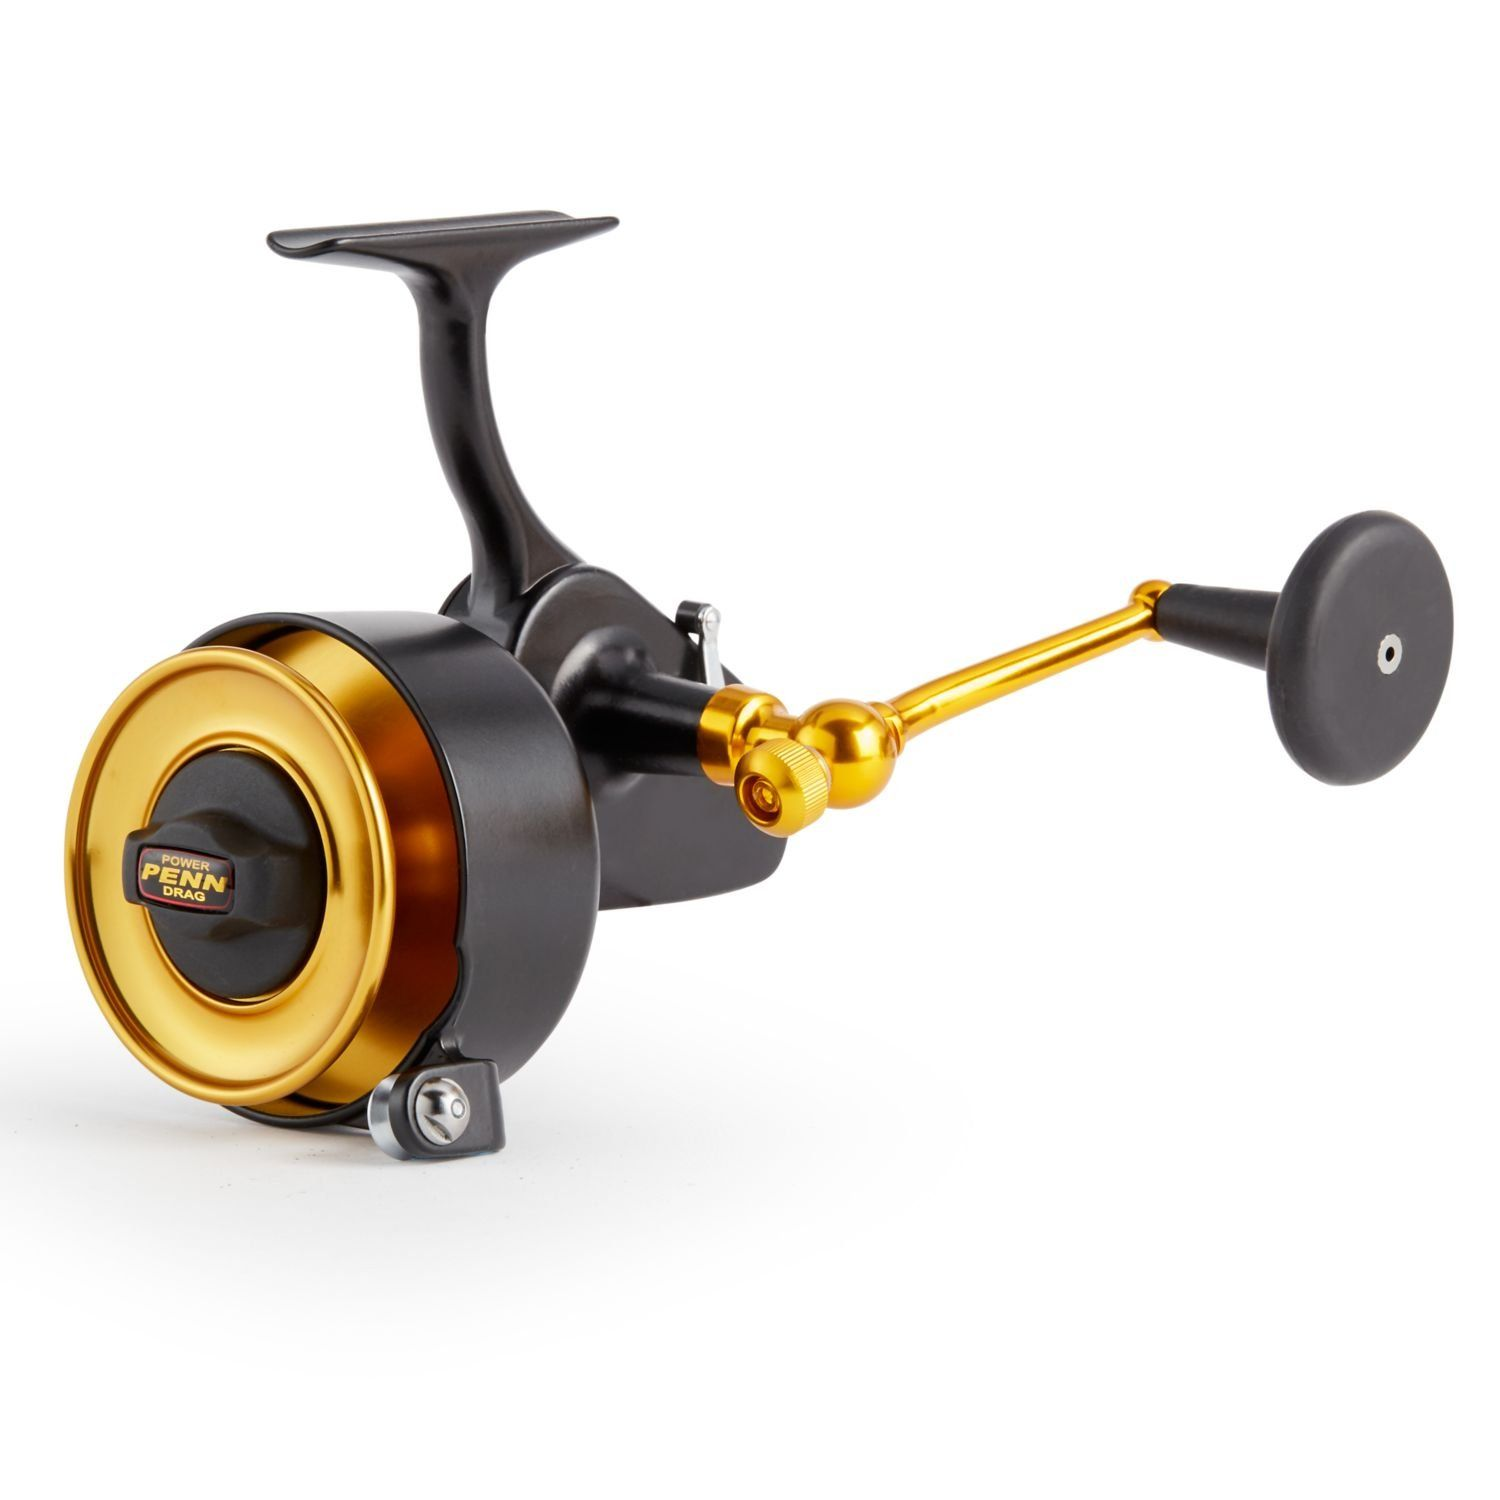 Penn Z Series 706z Spinning Fishing Reel Spinning Fishing Reel Combines Smooth Drag With A Time Tested Ul Fishing Reels Spinning Reels Fishing Reels For Sale